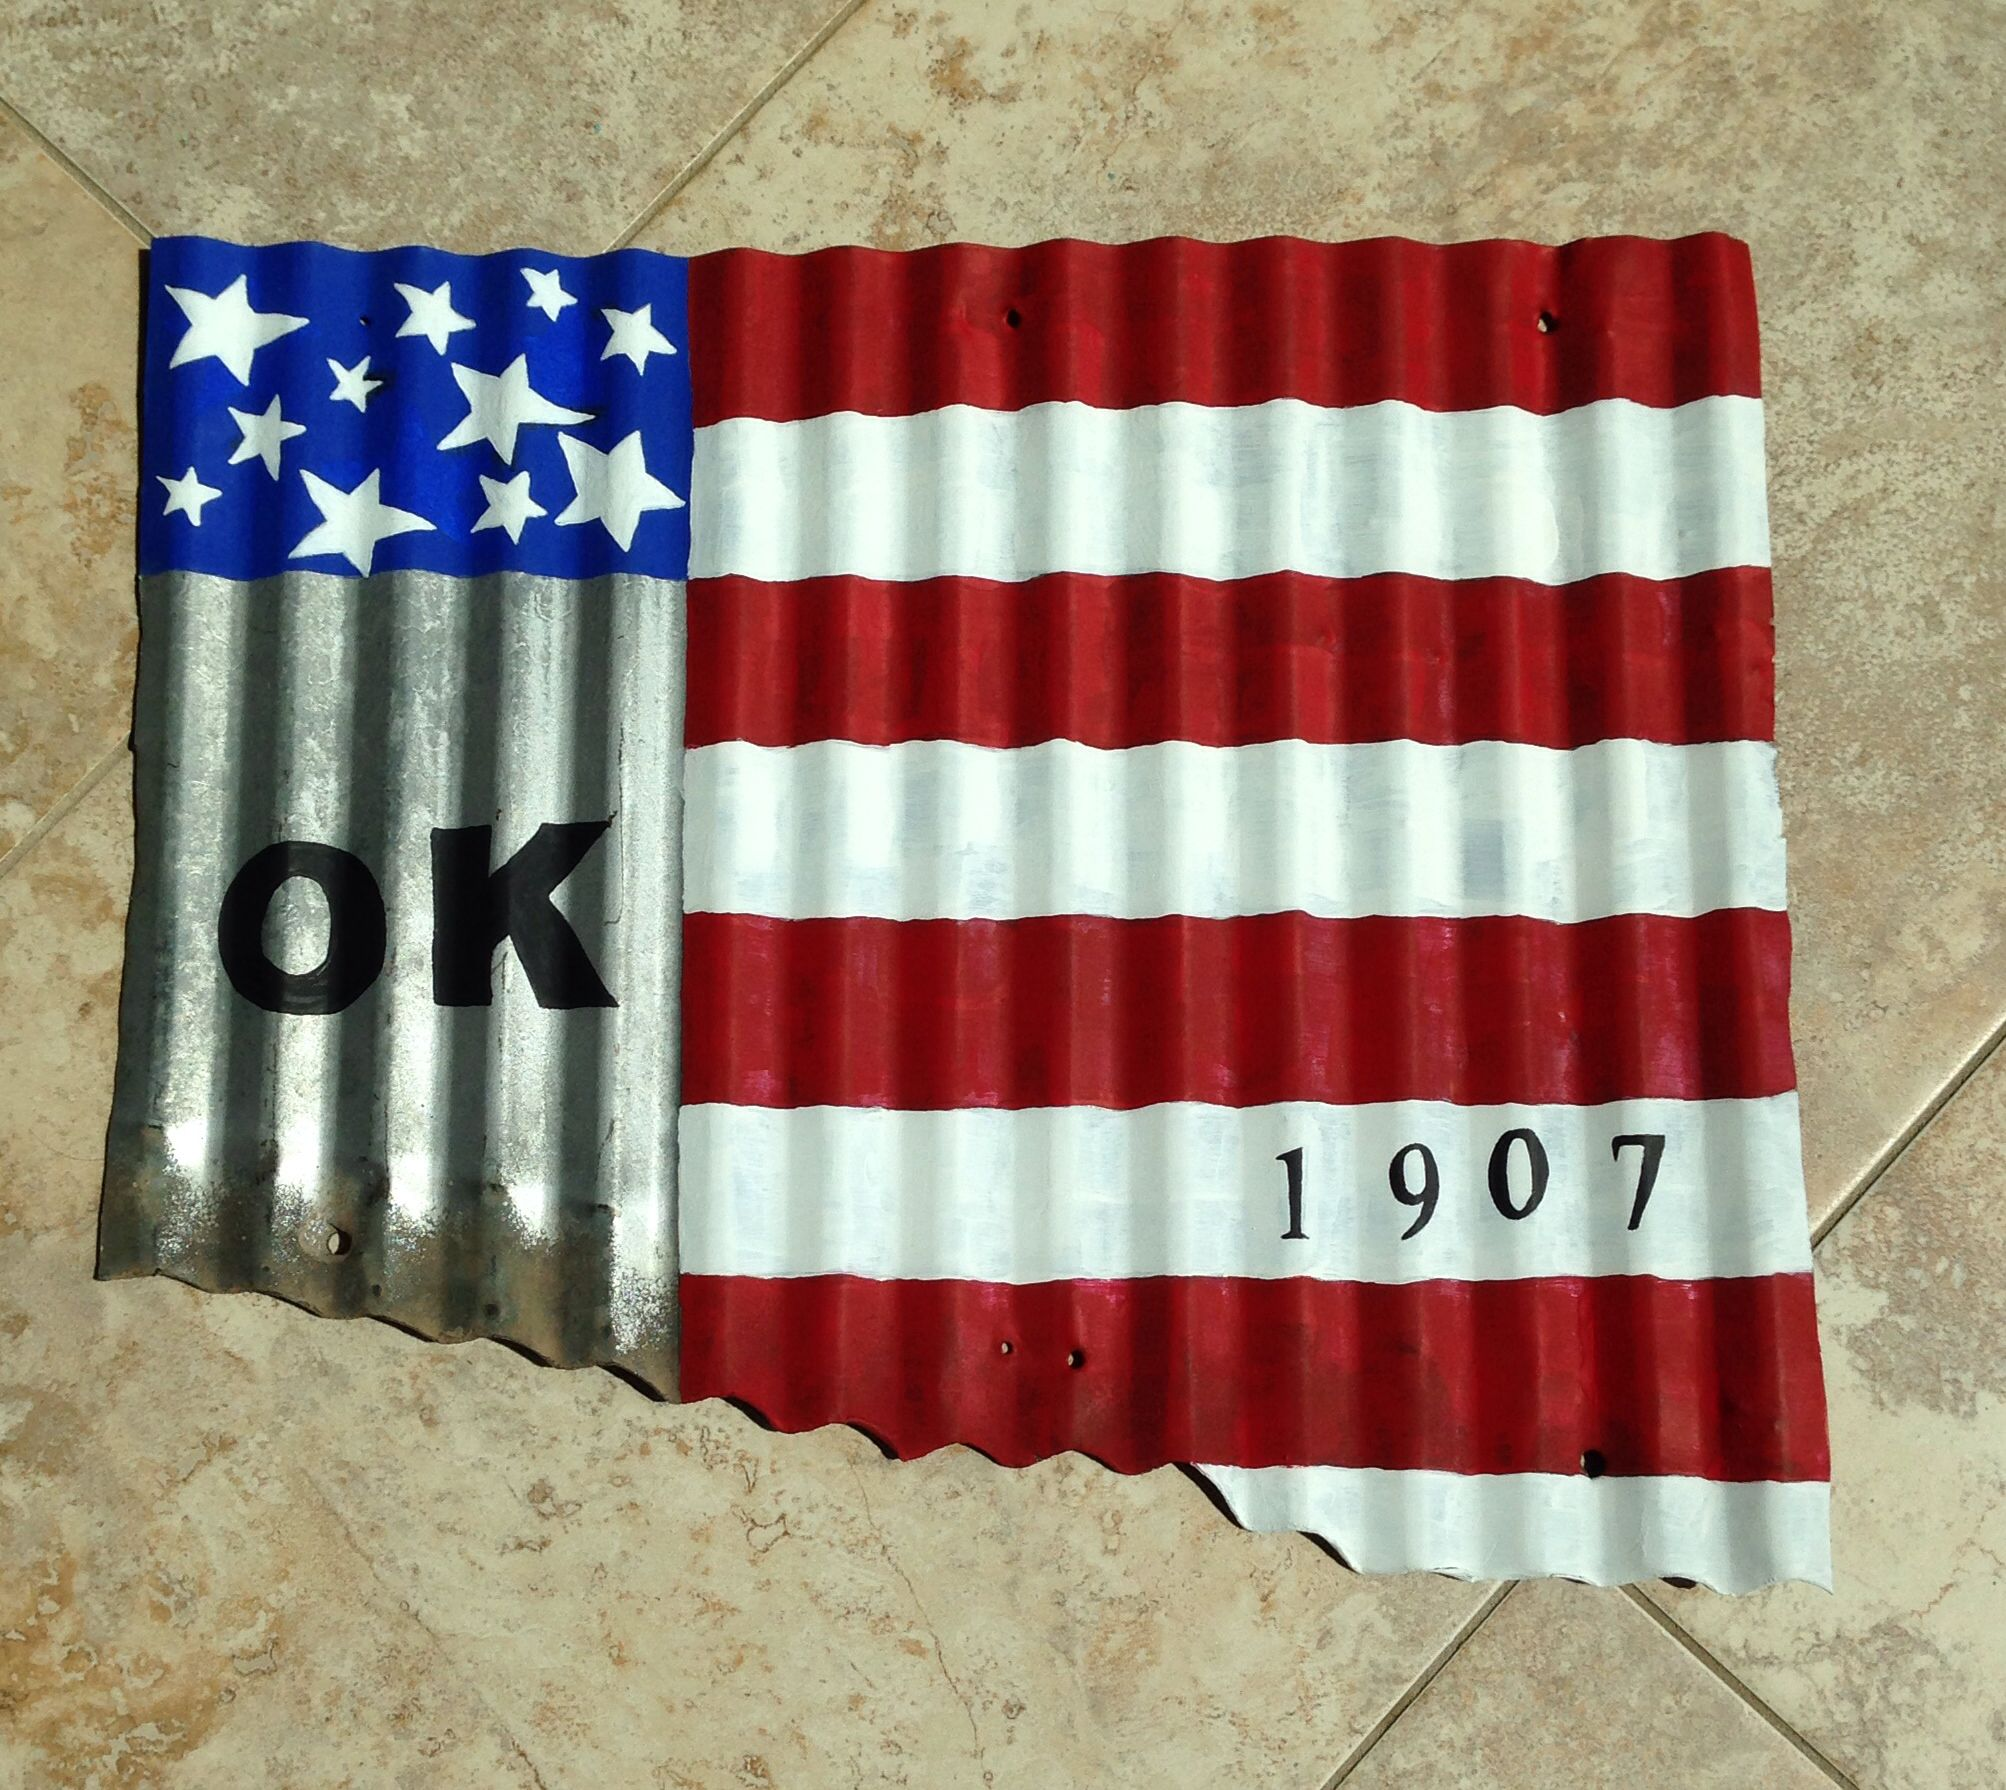 872ca91703c7 Oklahoma painted with acrylics using American flag design on corrugated  metal rescued from an old cow